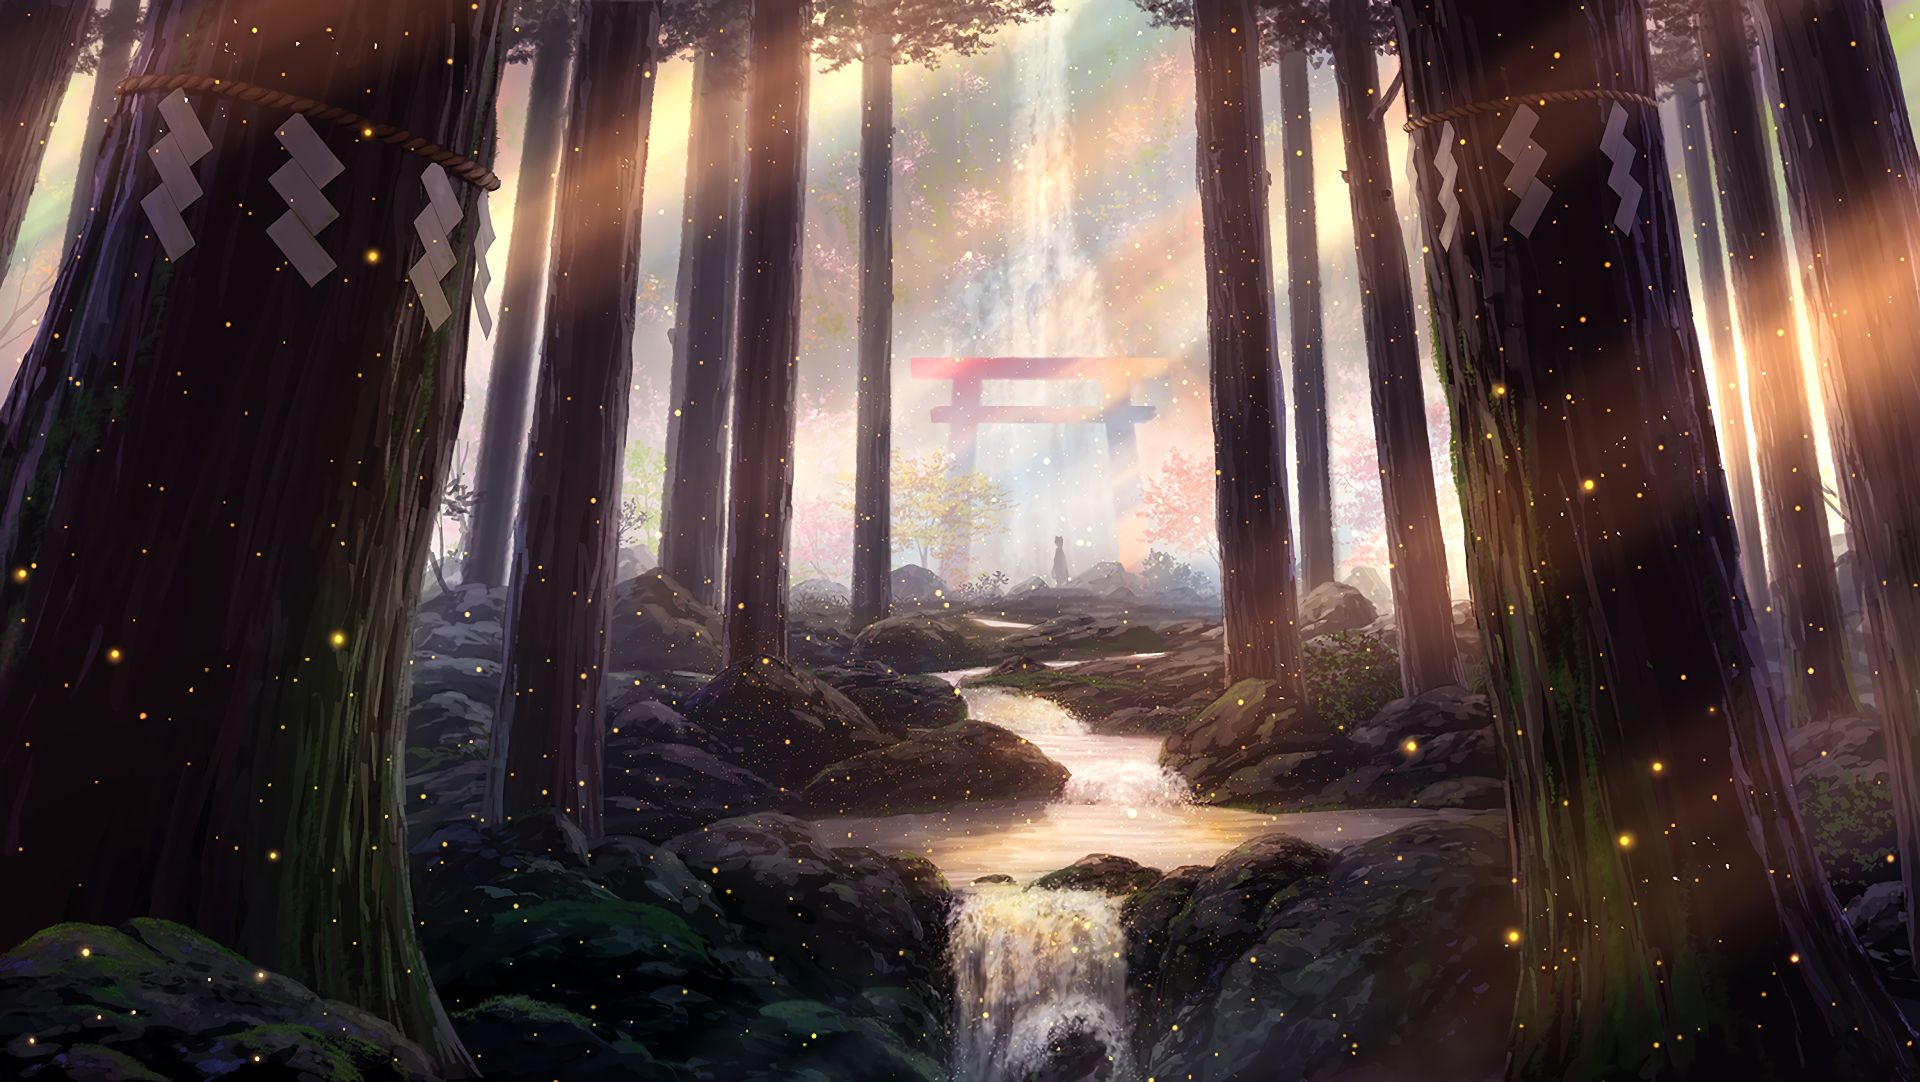 General 1920x1082 digital art artwork forest trees landscape shrine sunset fantasy art torii sun rays stream stones nature